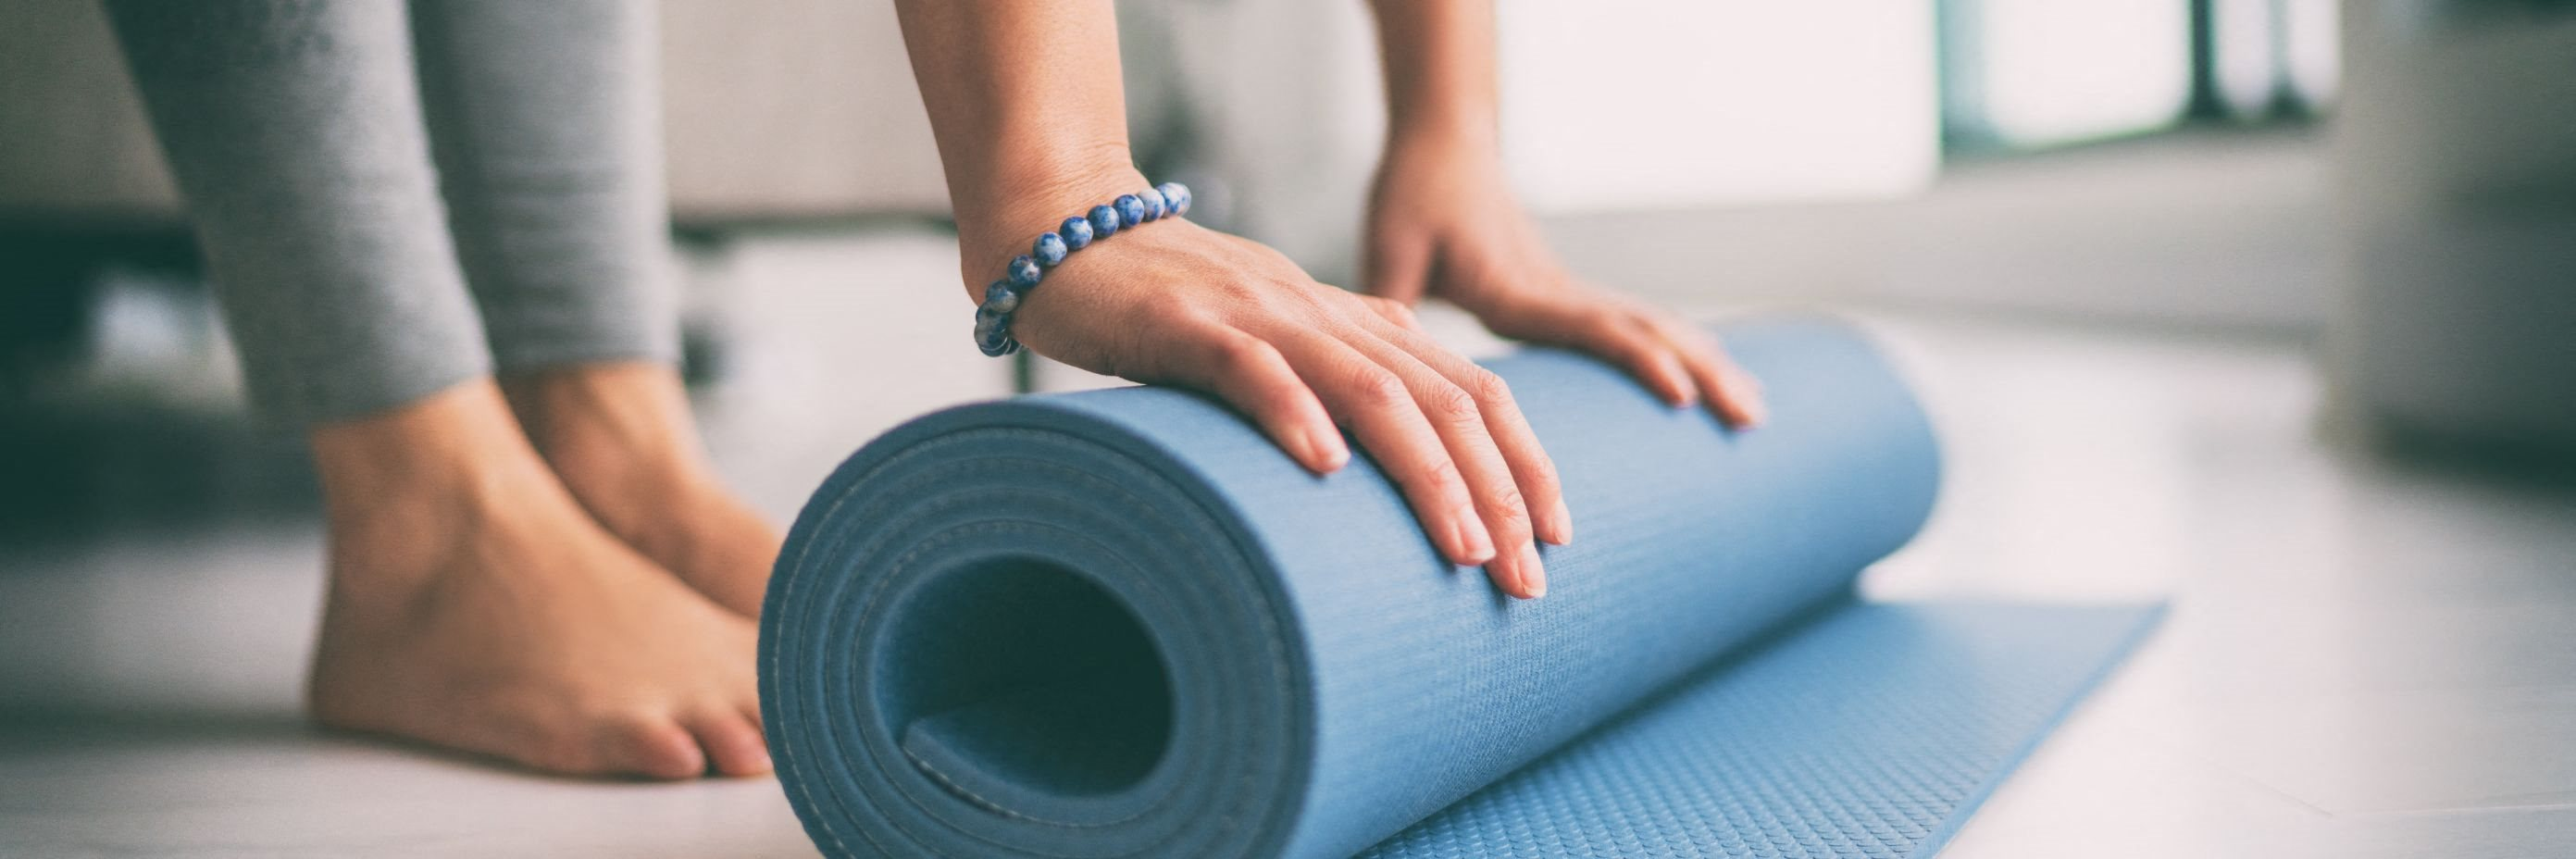 STOCK IMAGE OF FEMAIL AND YOGA MAT